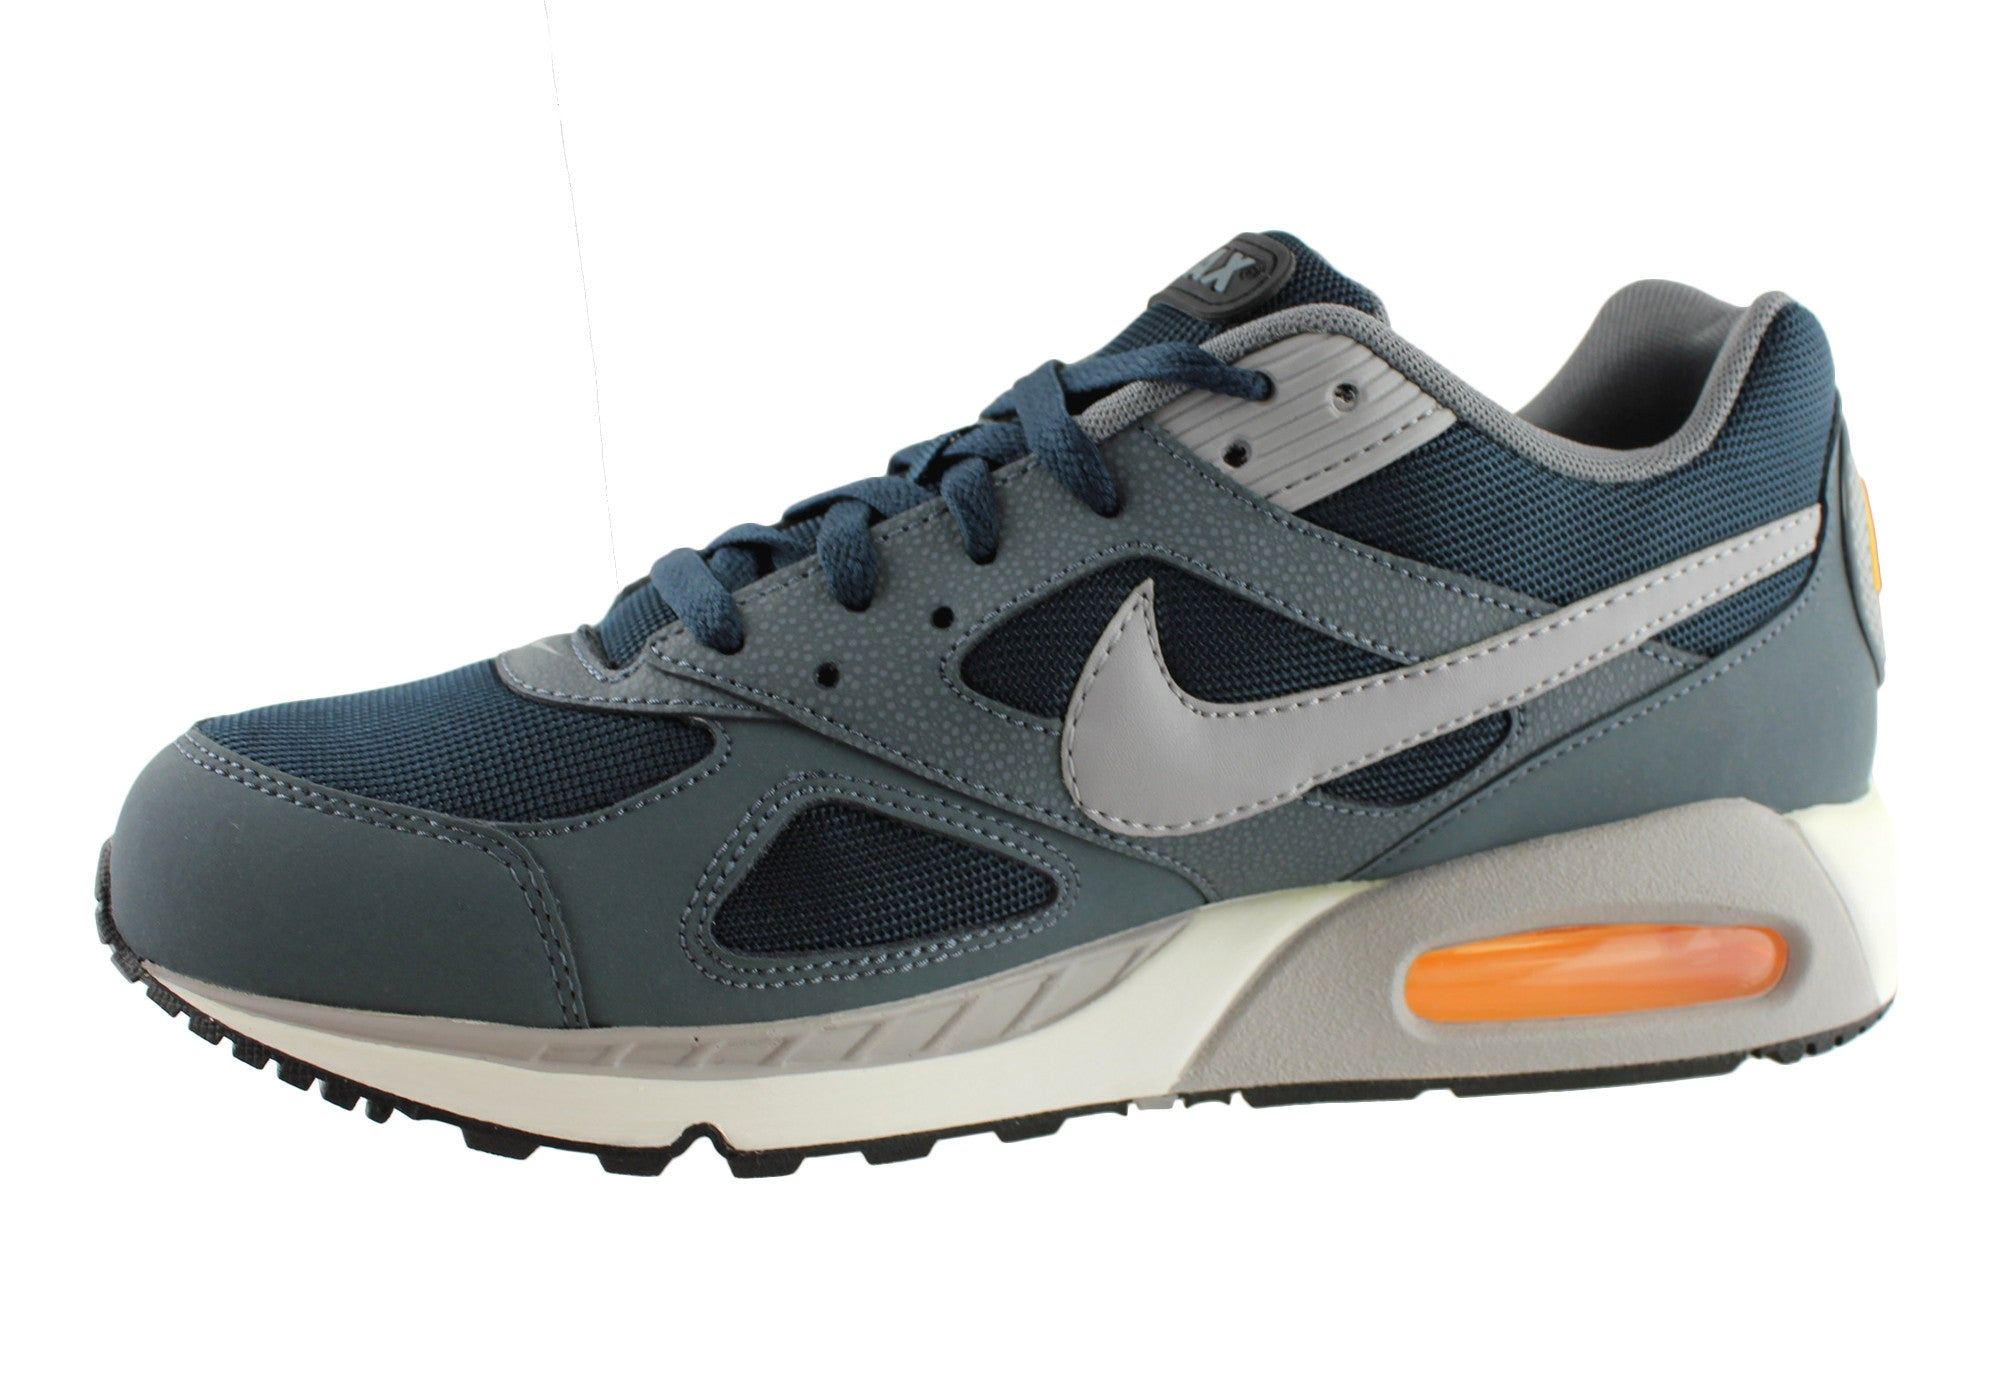 Nike Air Max IVO Mens Retro Running Shoes